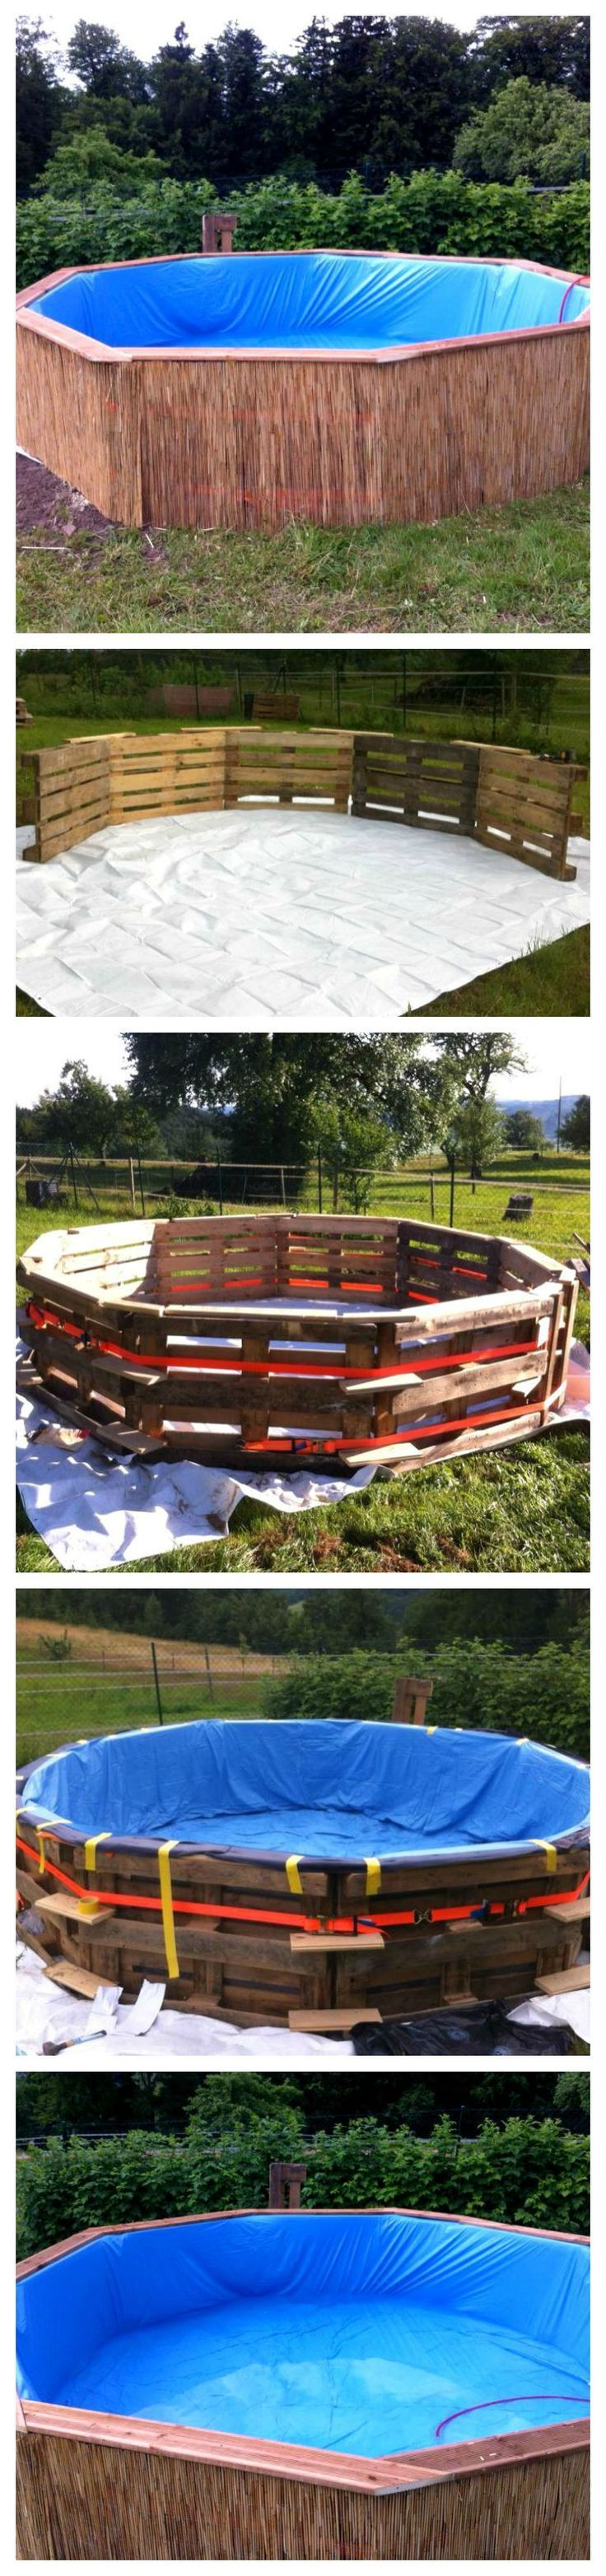 39 best images about redneck swimming pools on pinterest for Garden pool made from pallets